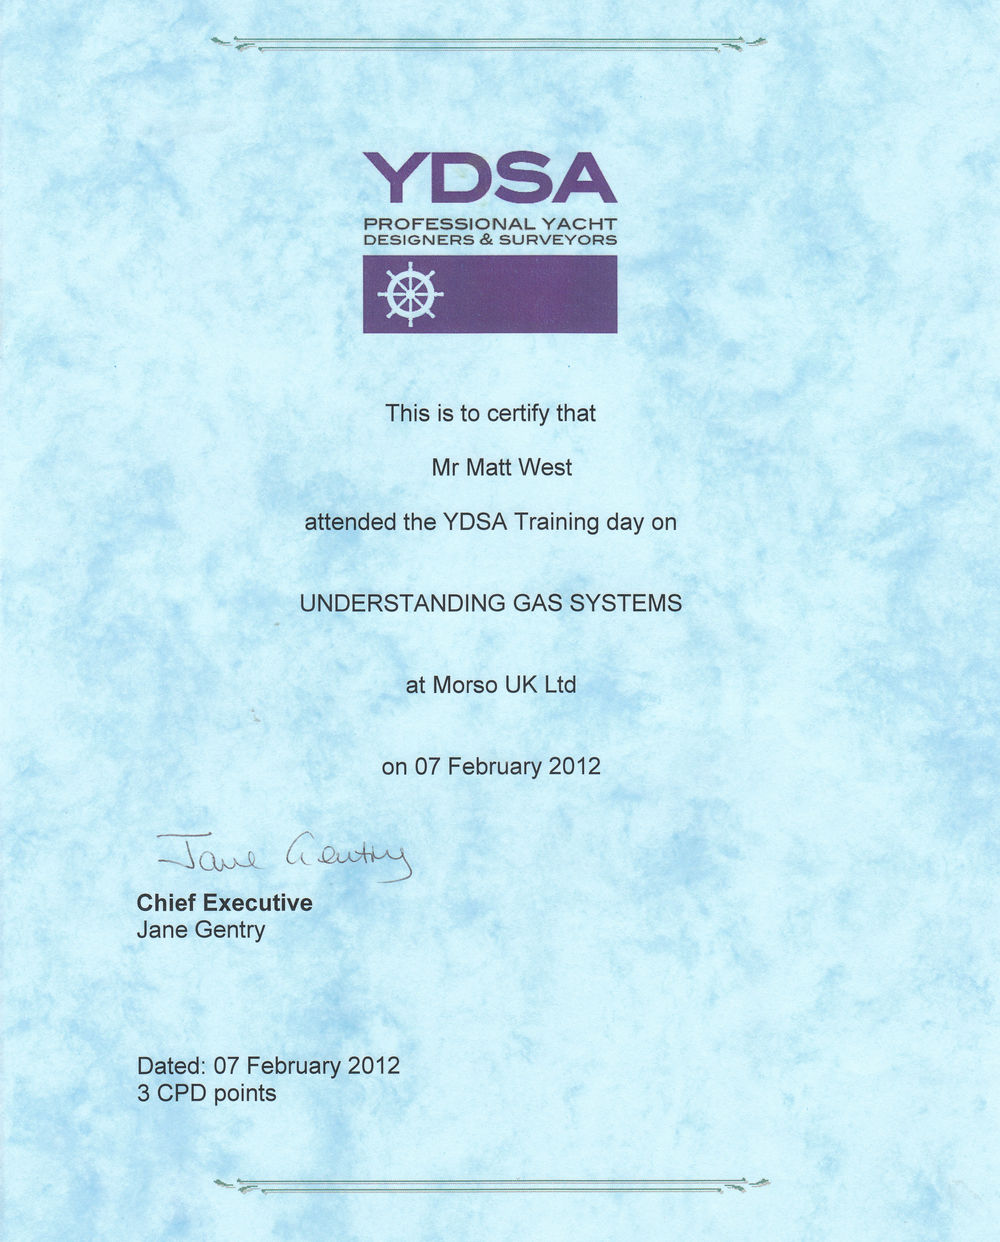 The YDSA Understanding LPG gas systems